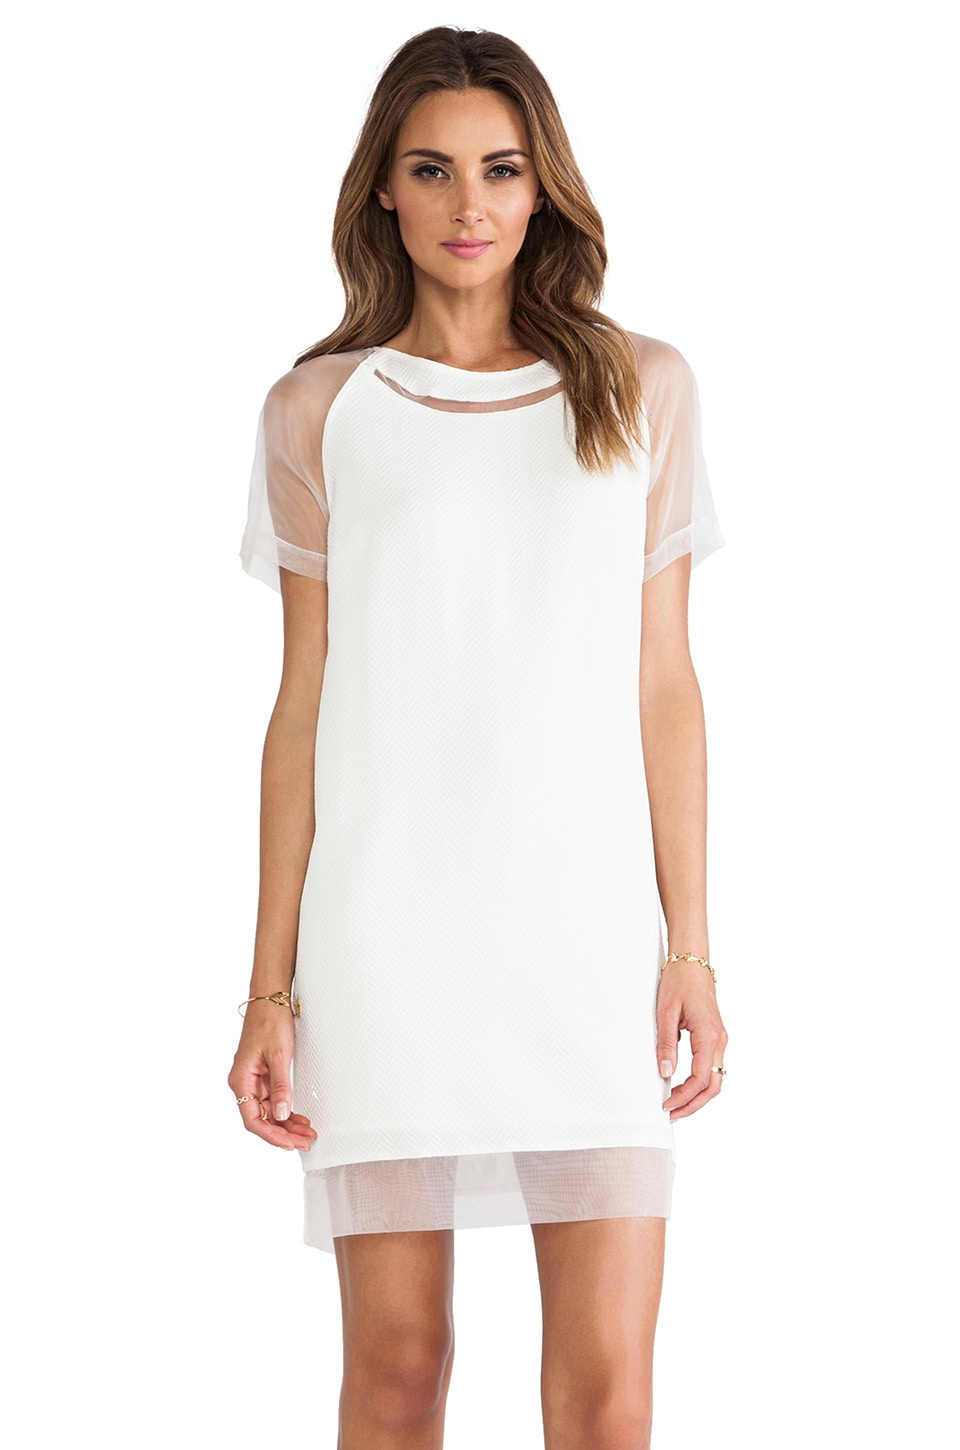 Greylin Aimee Shift Dress in White